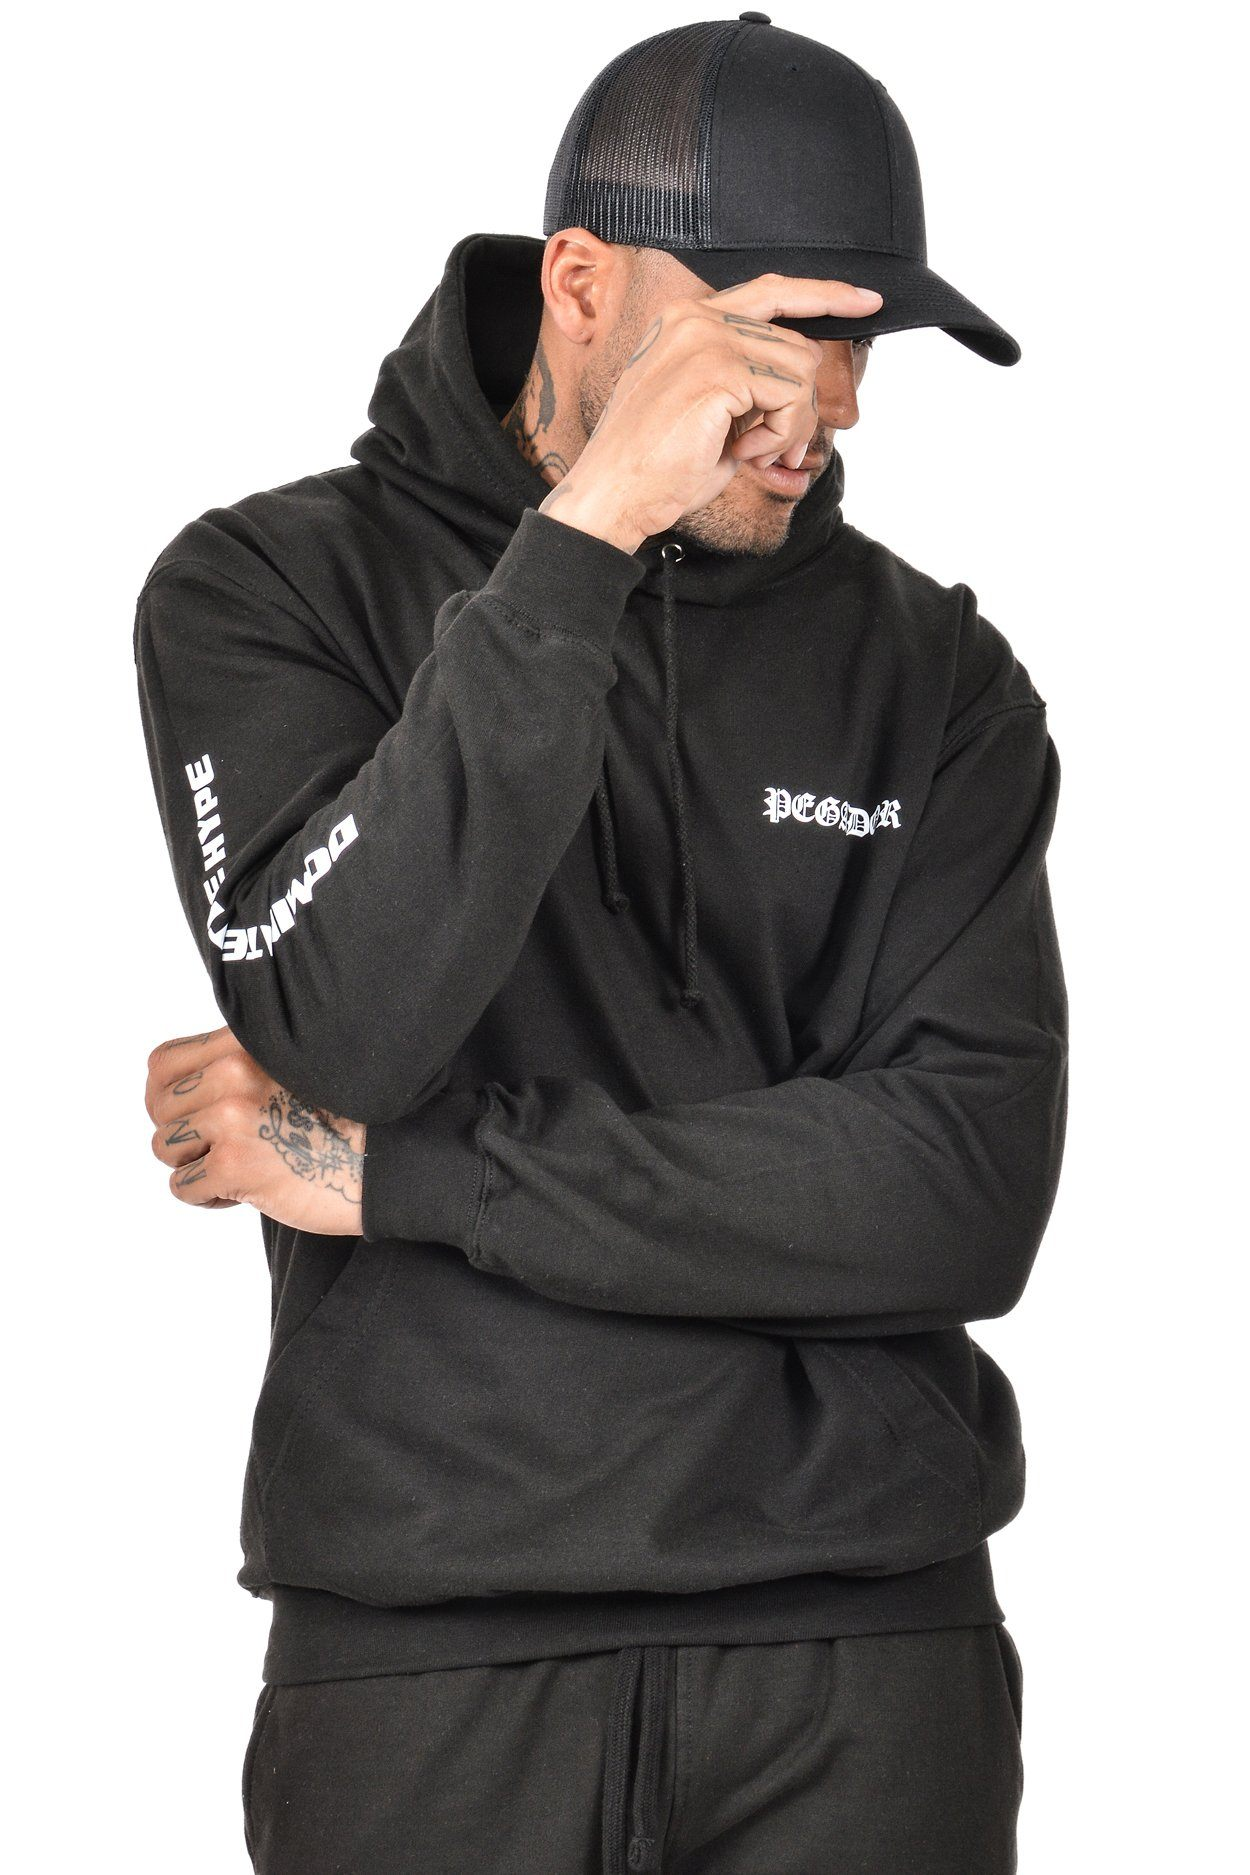 Gil Hoodie Black - PEGADOR - Dominate the Hype